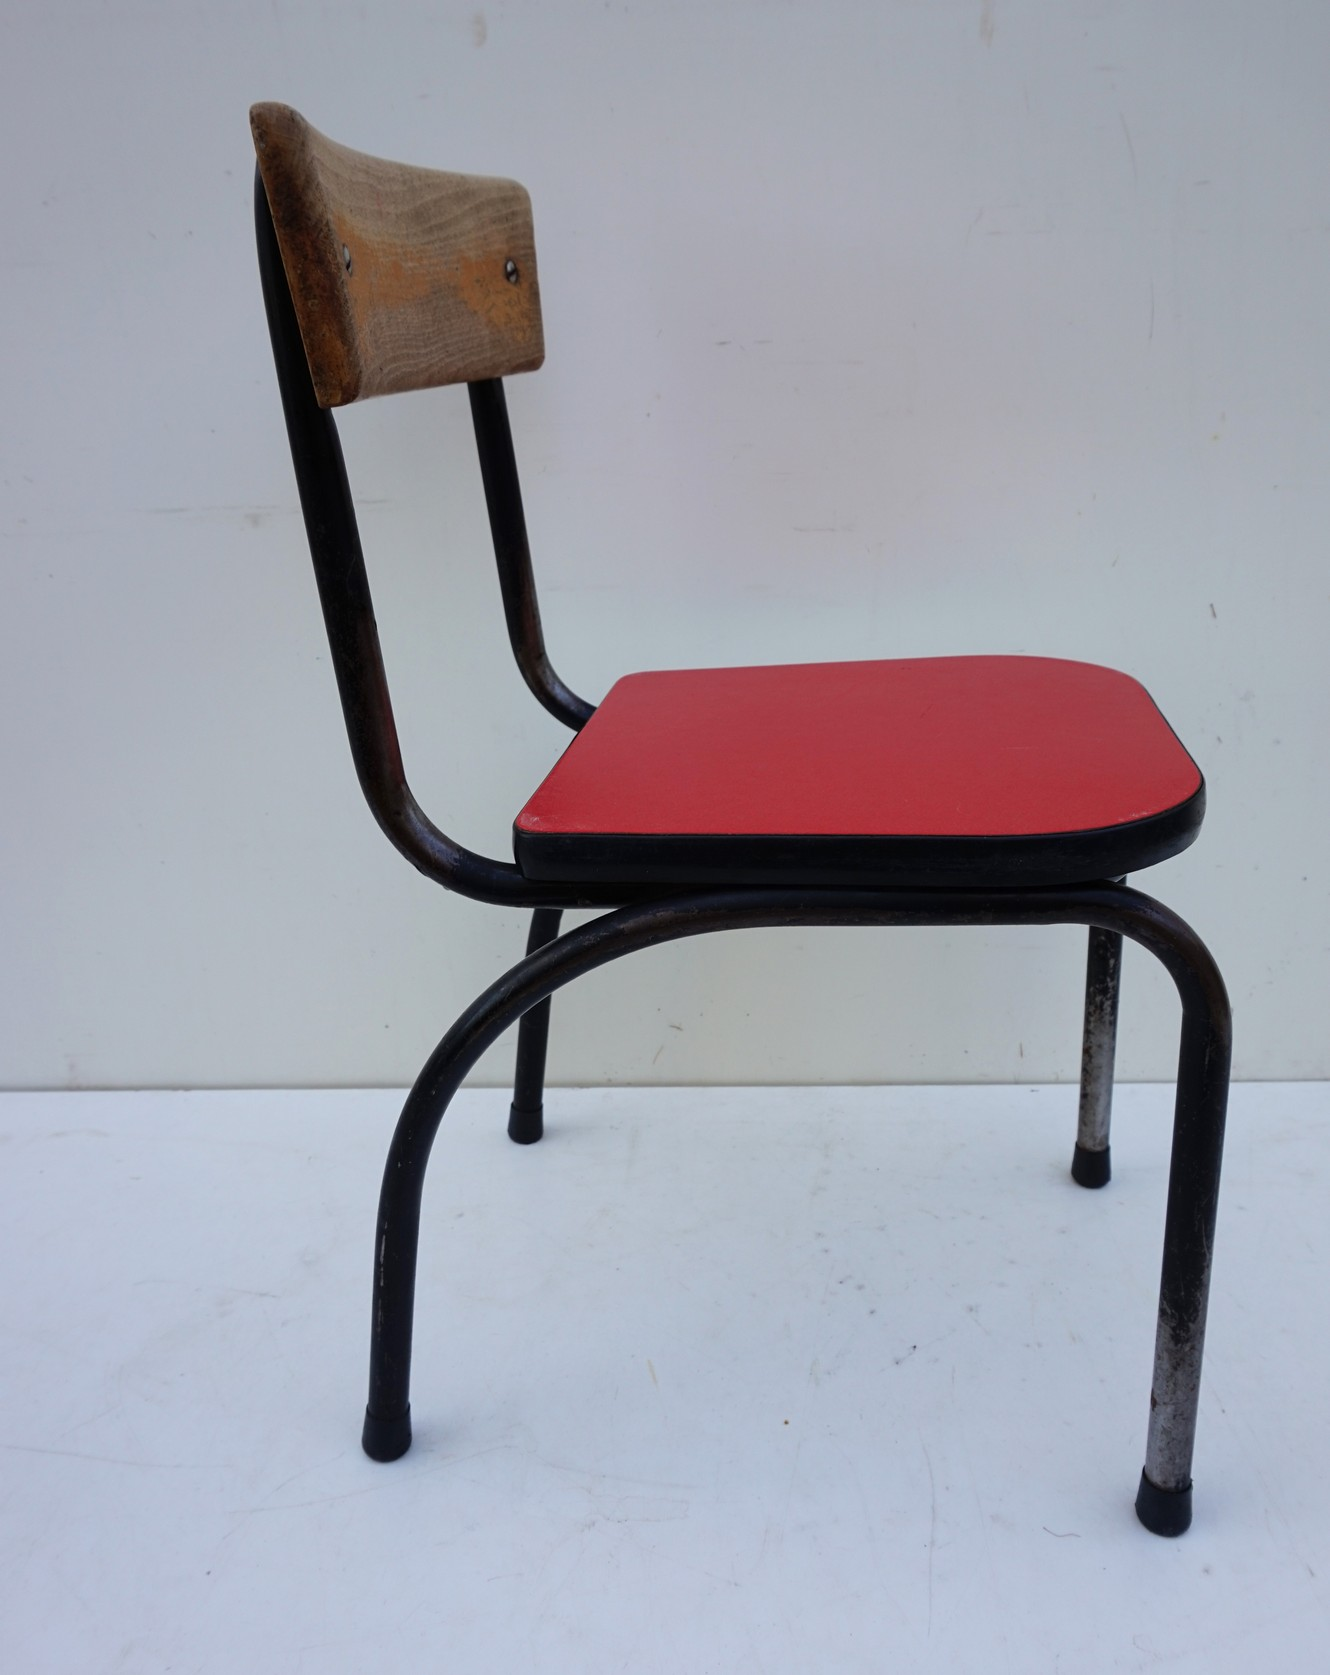 Hedendaags Industrial vintage children's chair by Willy van der Meeren PI-63